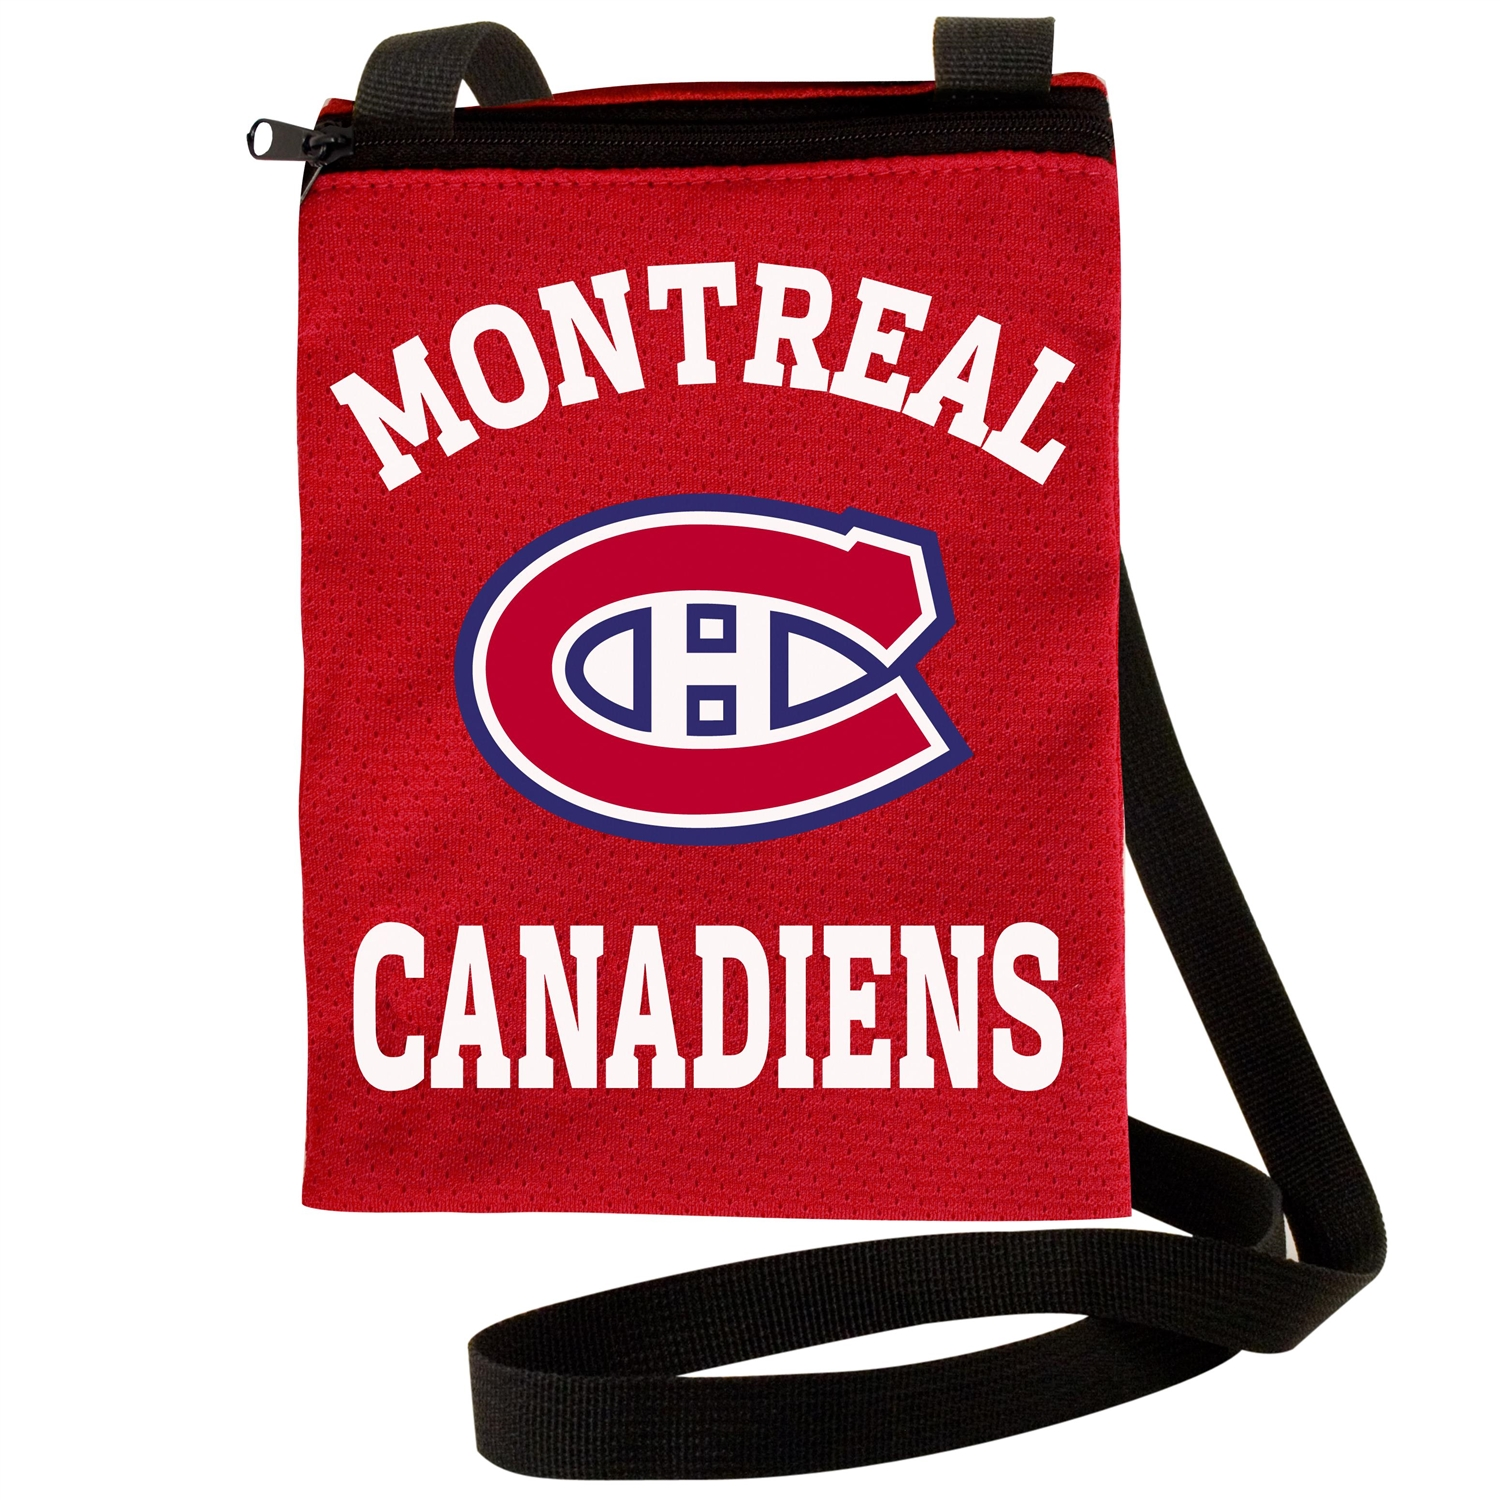 Hockey Nhl Hockey Montreal Canadiens Toys Games Puzzles Games - 500103-cand - Montreal Canadiens Game Day Pouch 500103-CAND